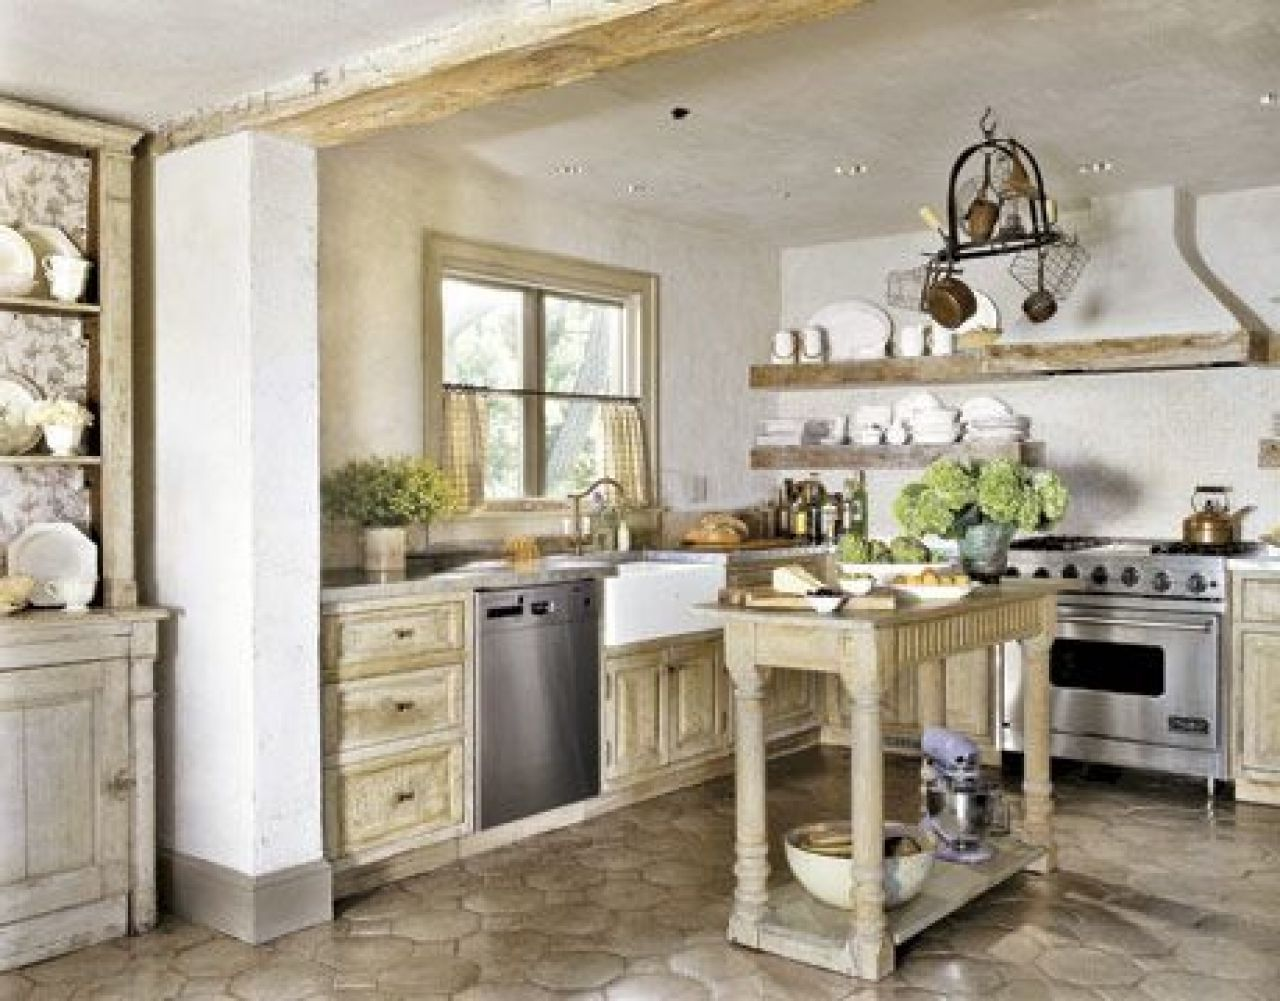 Shabby Chic Kitchen With Different Touch The Kitchen Inspiration Decor Pinterest Shabby